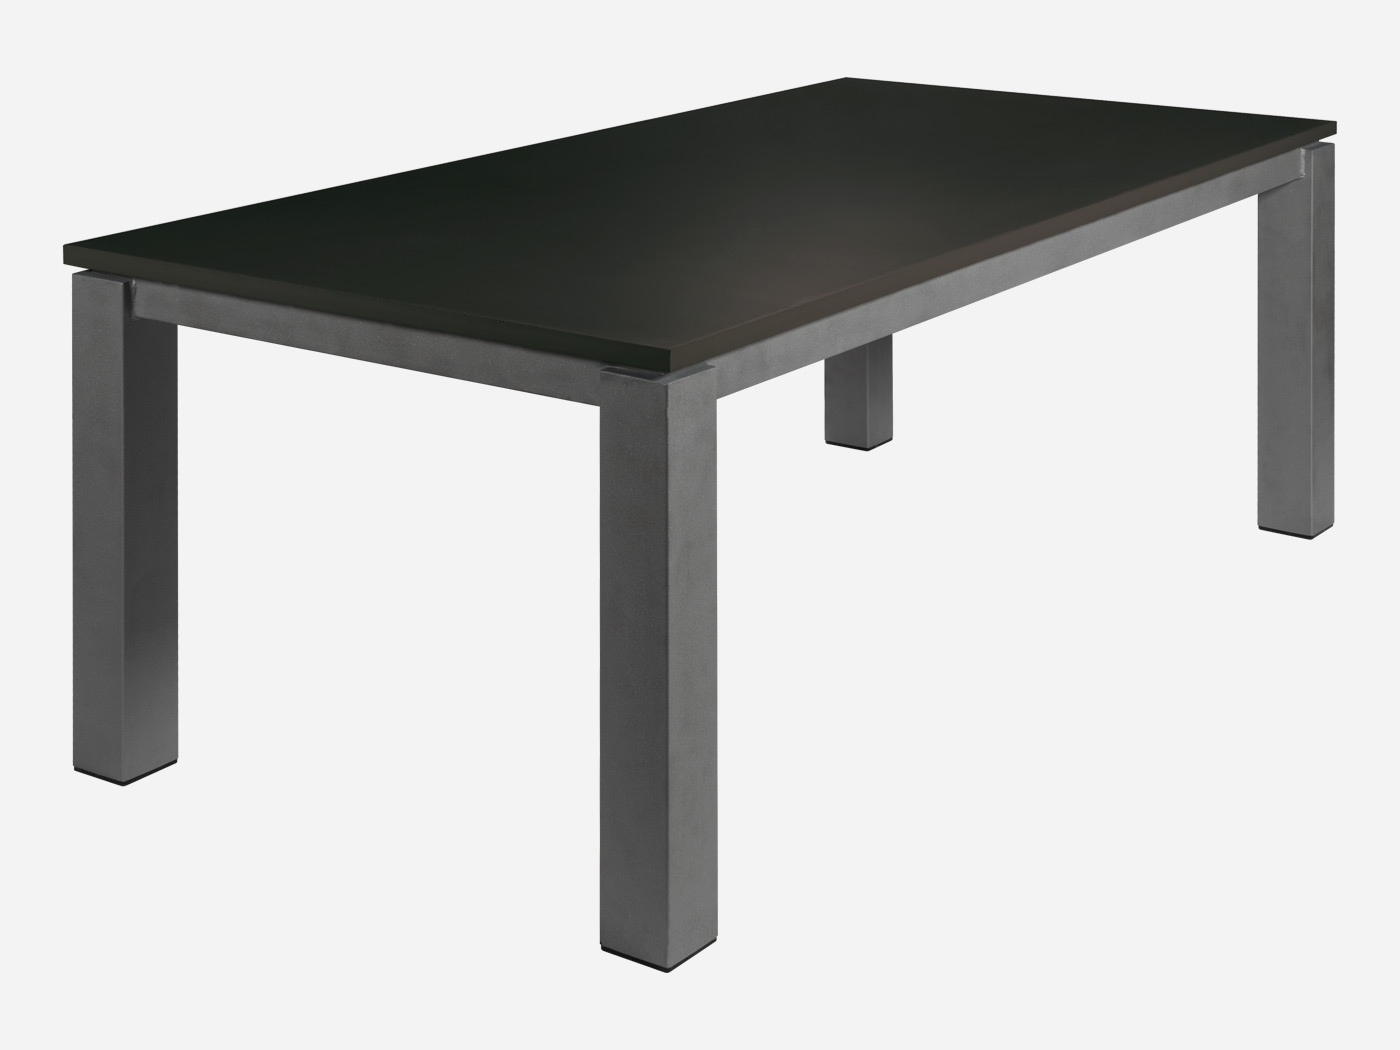 Table de salon salle manger rectangle roc de france for Table salle a manger un pied